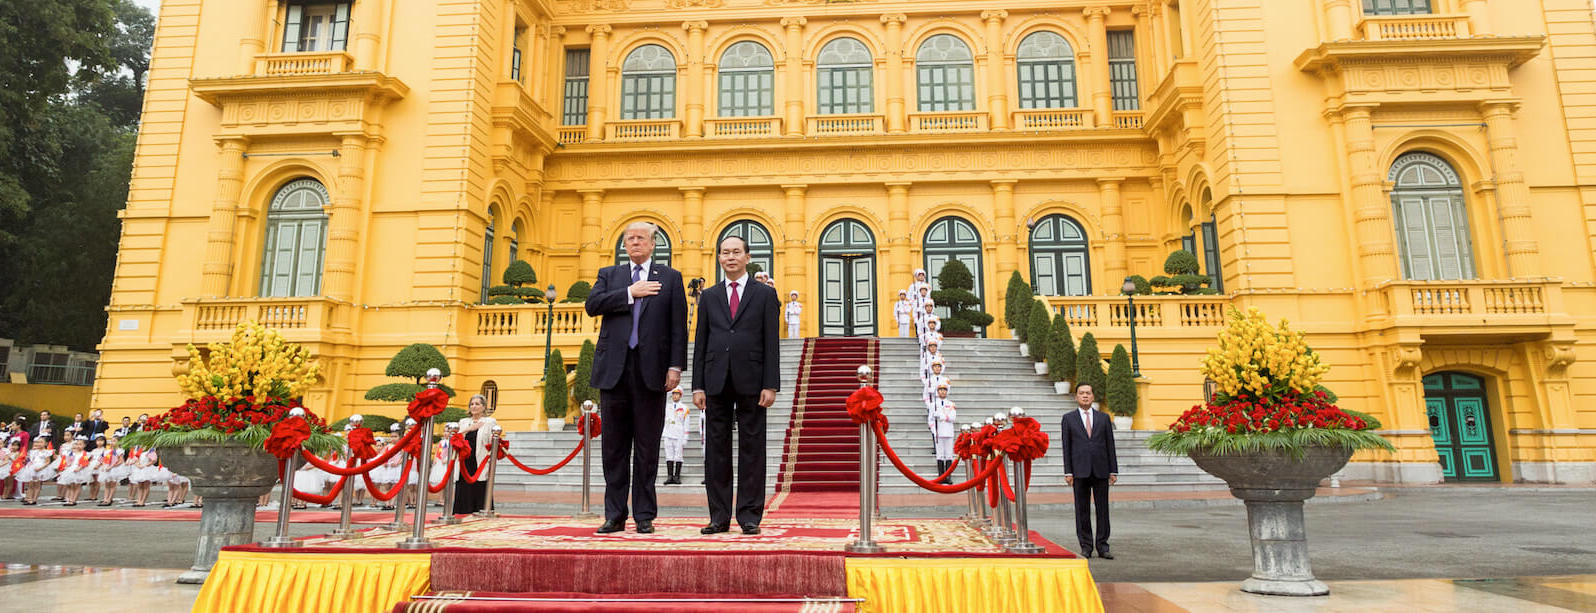 President Donald Trump and President Tran Dai Quang at the Presidential Palace, 12 November 2017, in Hanoi, Vietnam. (Official White House Photo by Shealah Craighead)